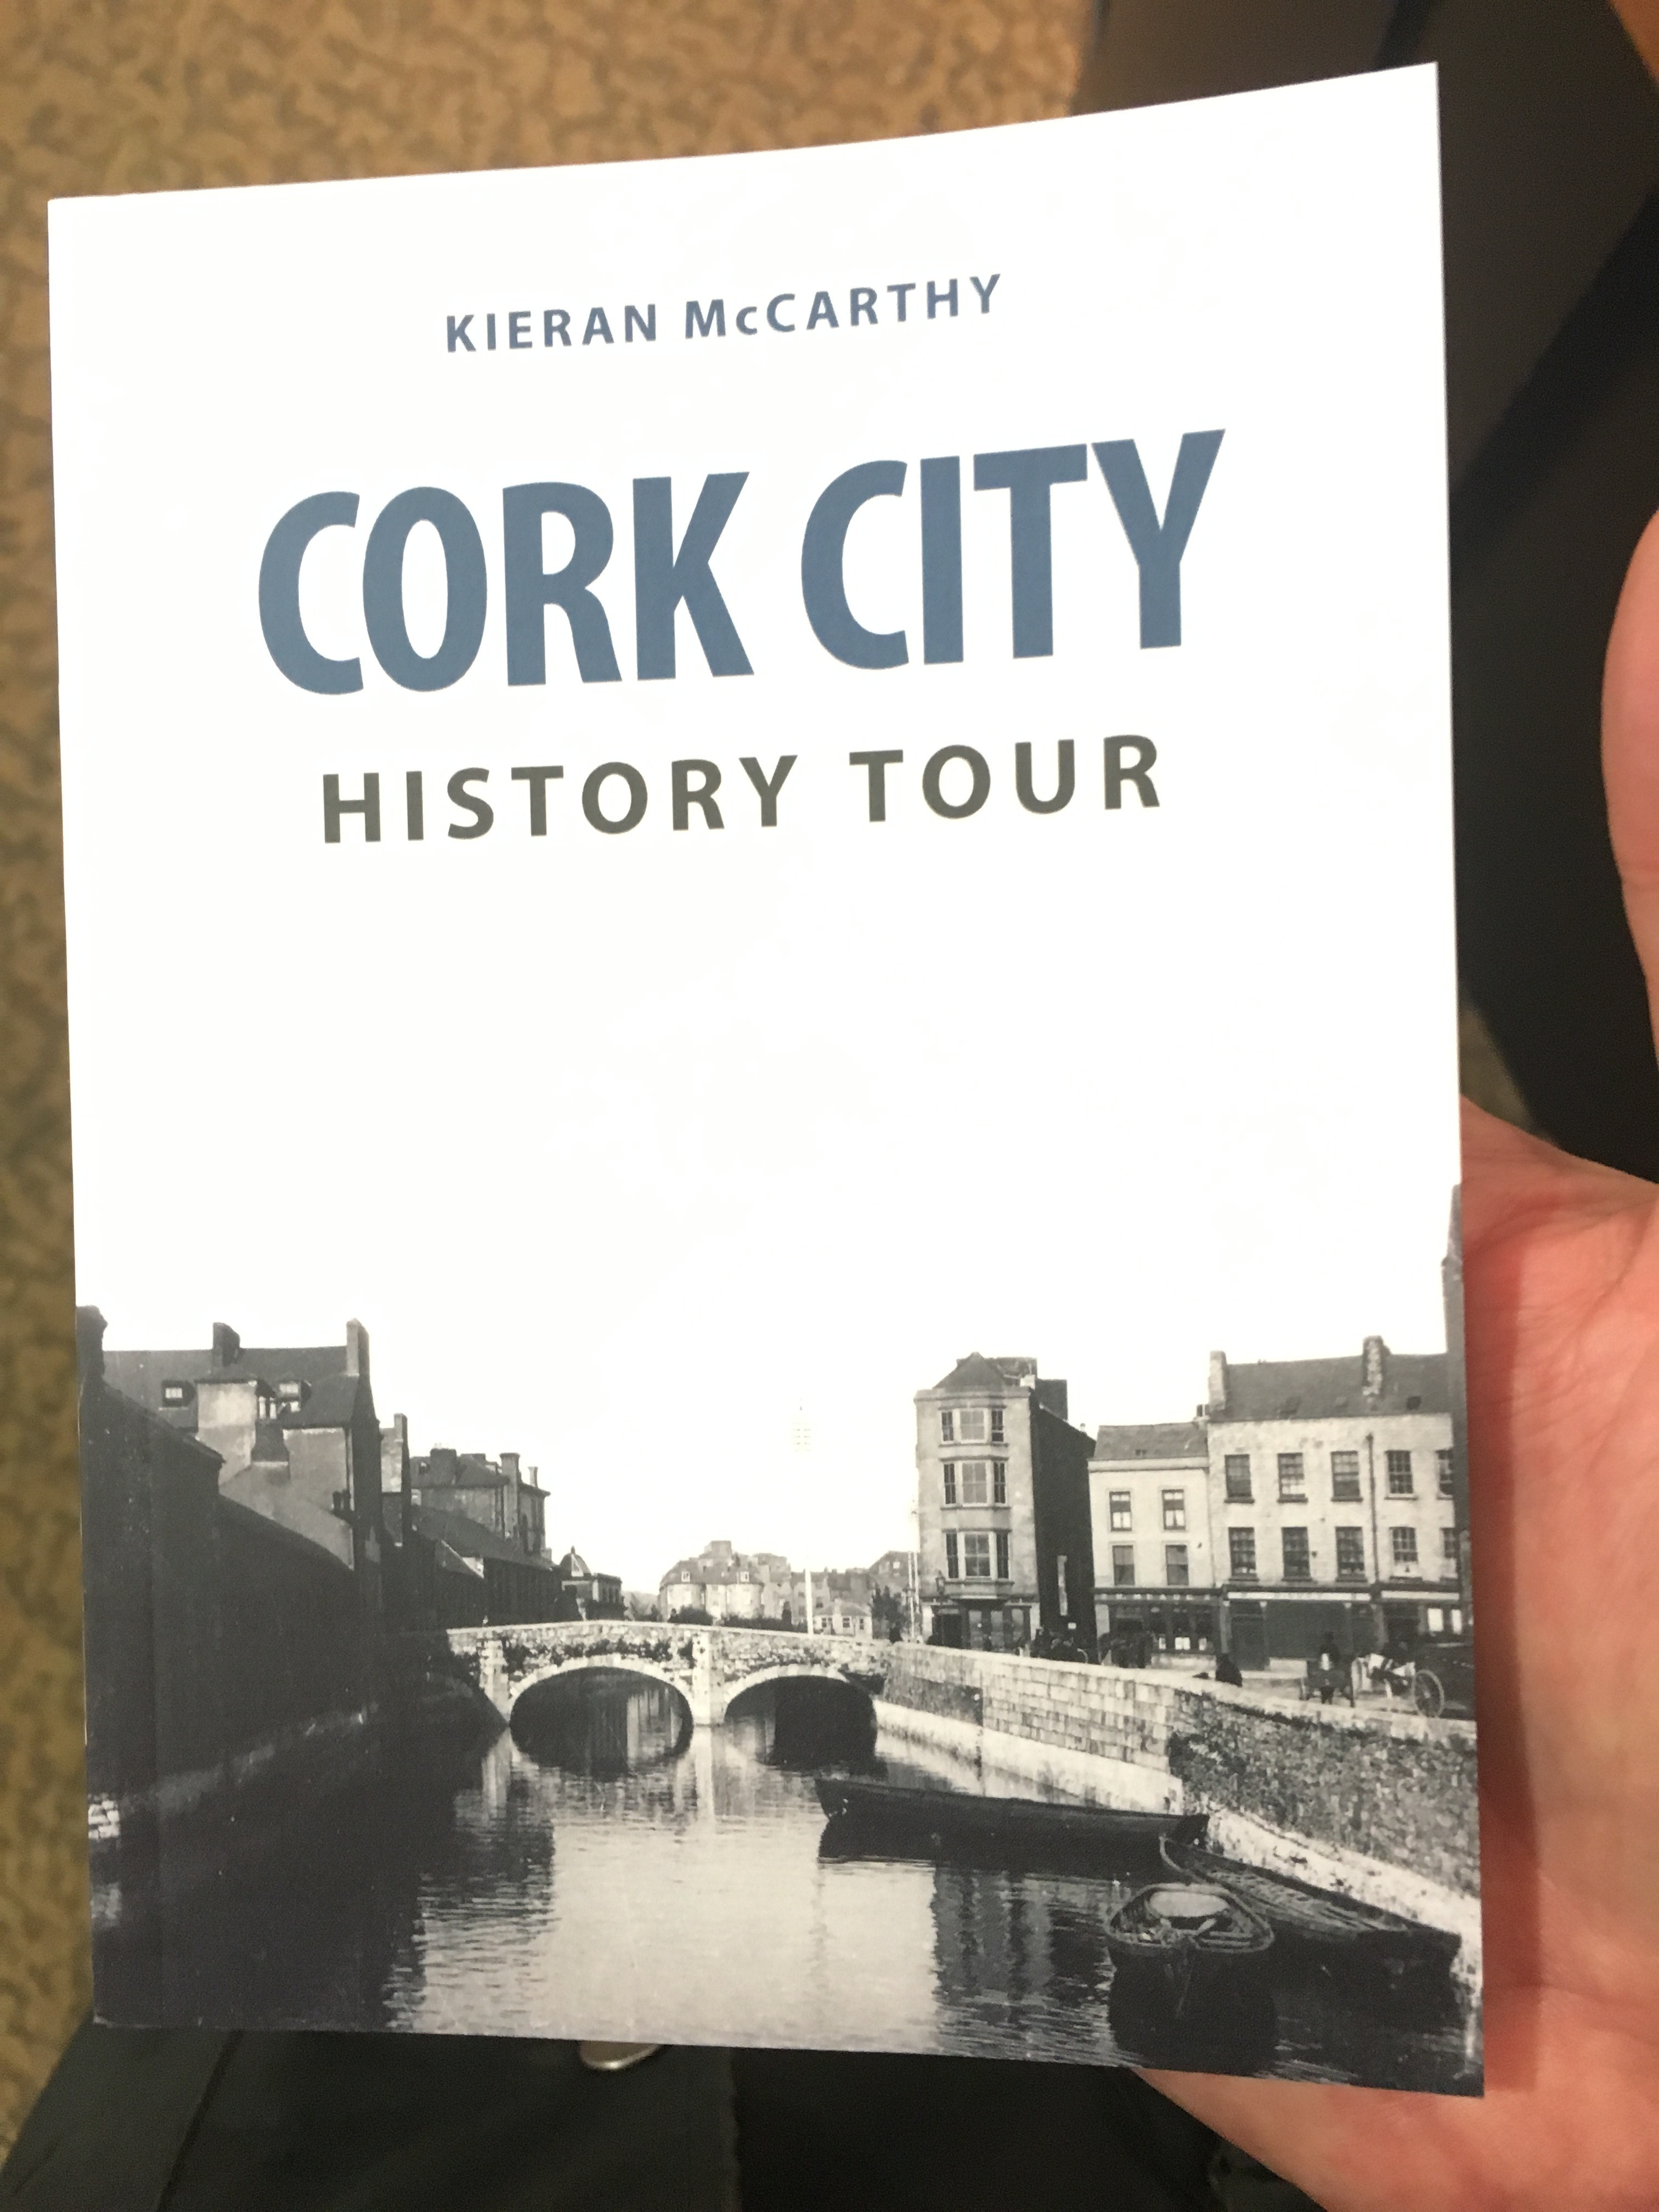 865a. Front Cover of Cork City History Tour by Kieran McCarthy